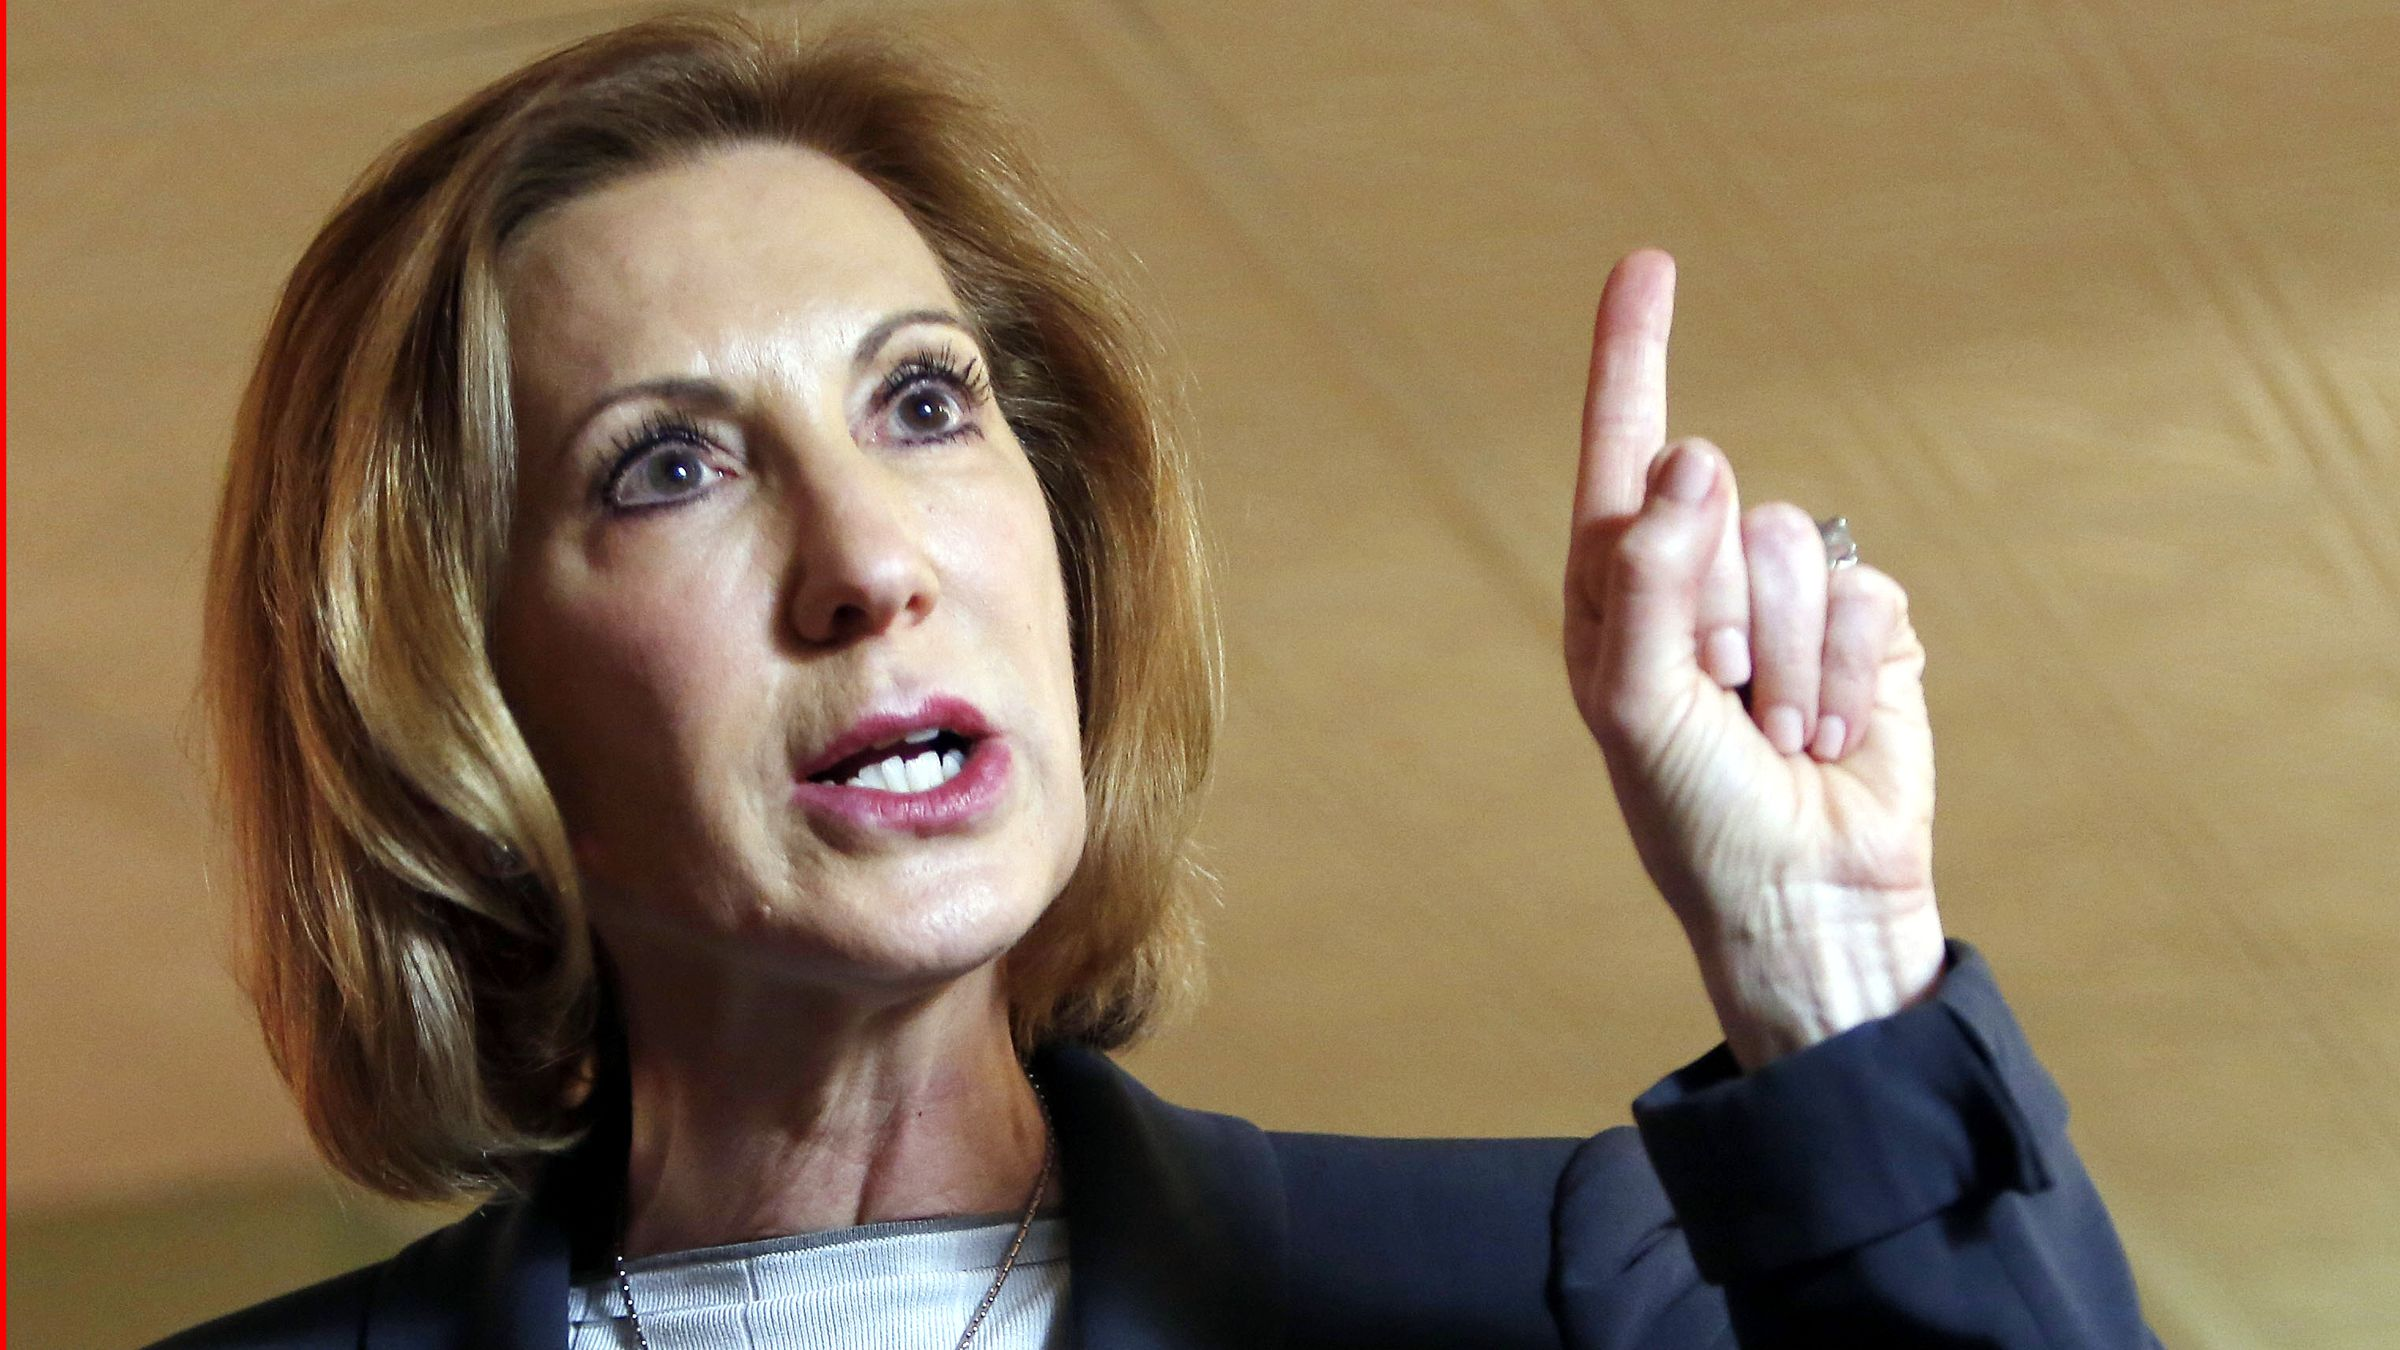 FILE - In this April 28, 2015 file photo, former Hewlett-Packard CEO Carly Fiorina speaks during a business luncheon at the Barley House with New Hampshire Republican lawmakers, in Concord, N.H. Former technology executive Carly Fiorina formally entered the 2016 presidential race on Monday, launching a Republican White House bid in a morning interview that highlighted her role as a leading critic of Democratic contender Hillary Rodham Clinton.